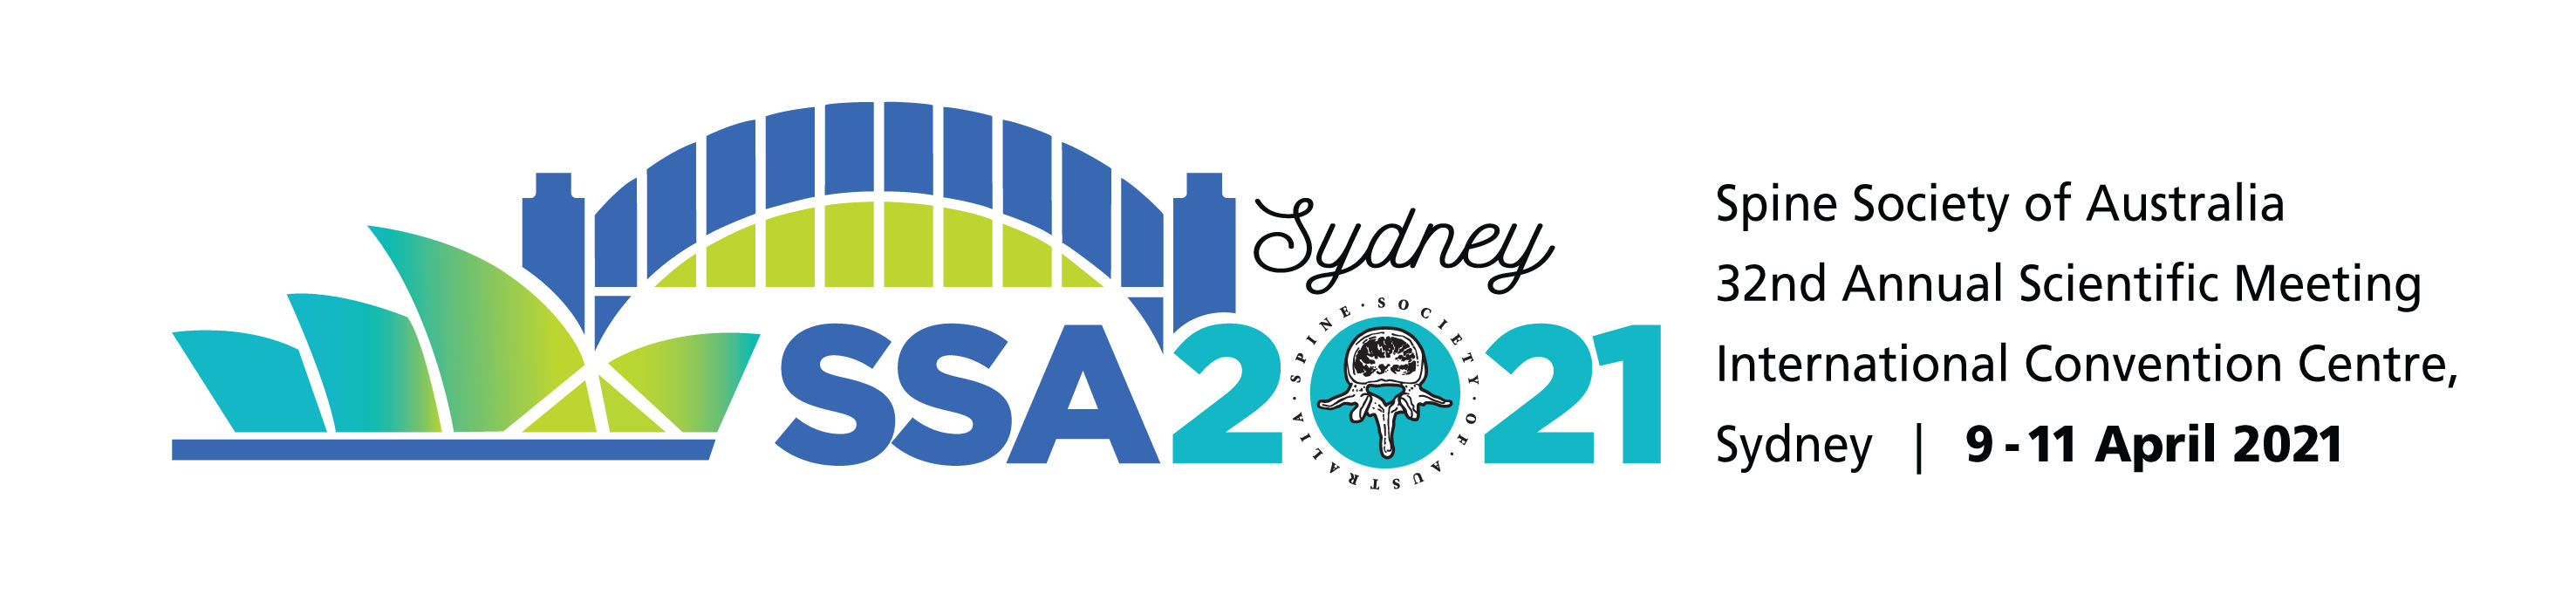 2021 Spine Society of Australia 32nd Annual Scientific Meeting